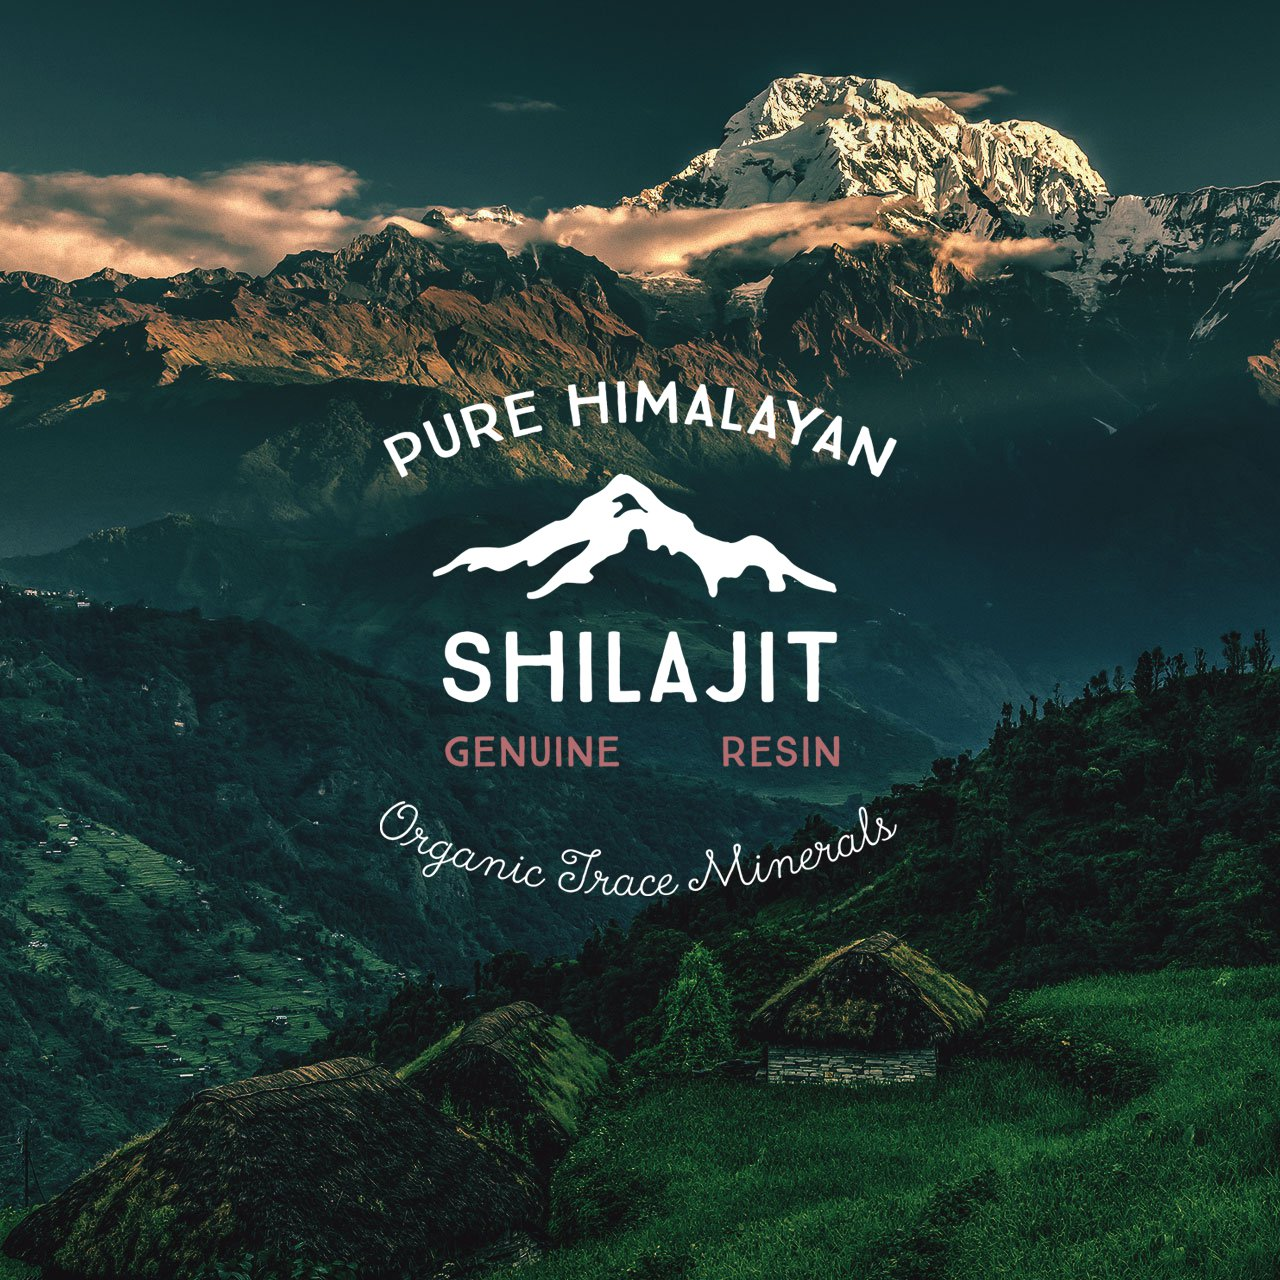 100% Pure Shilajit Resin Authentic himalayan mumijo mumiyo10g WITHOUT DILUTION